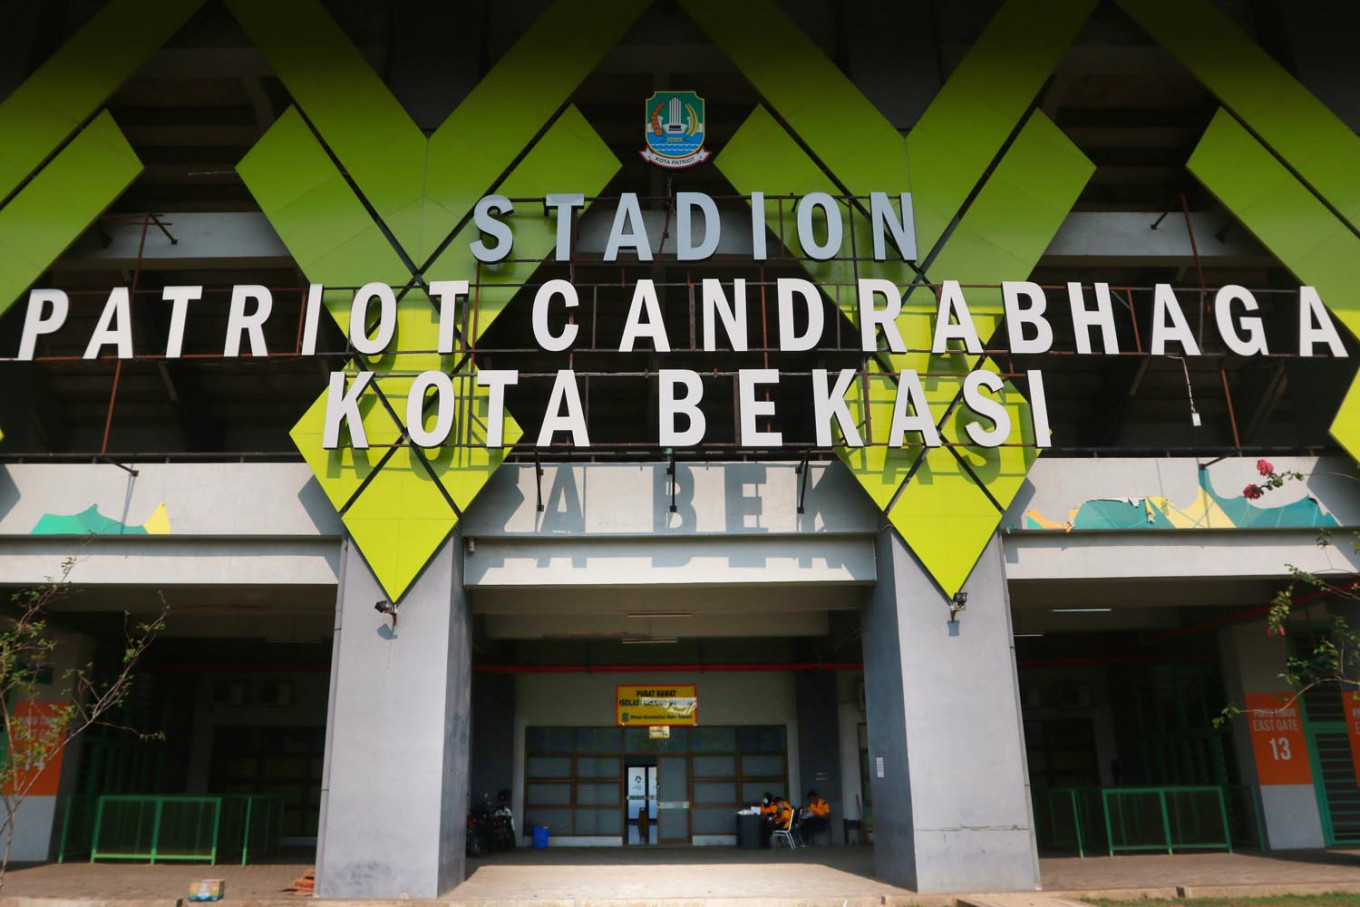 The entrance gate to the Patriot Candrabhaga Stadium in Bekasi, West Java on October. 2. 2020. The sports venue has been converted into an isolation center for asymptomatic COVID-19 patients. JP/Dhoni Setiawan